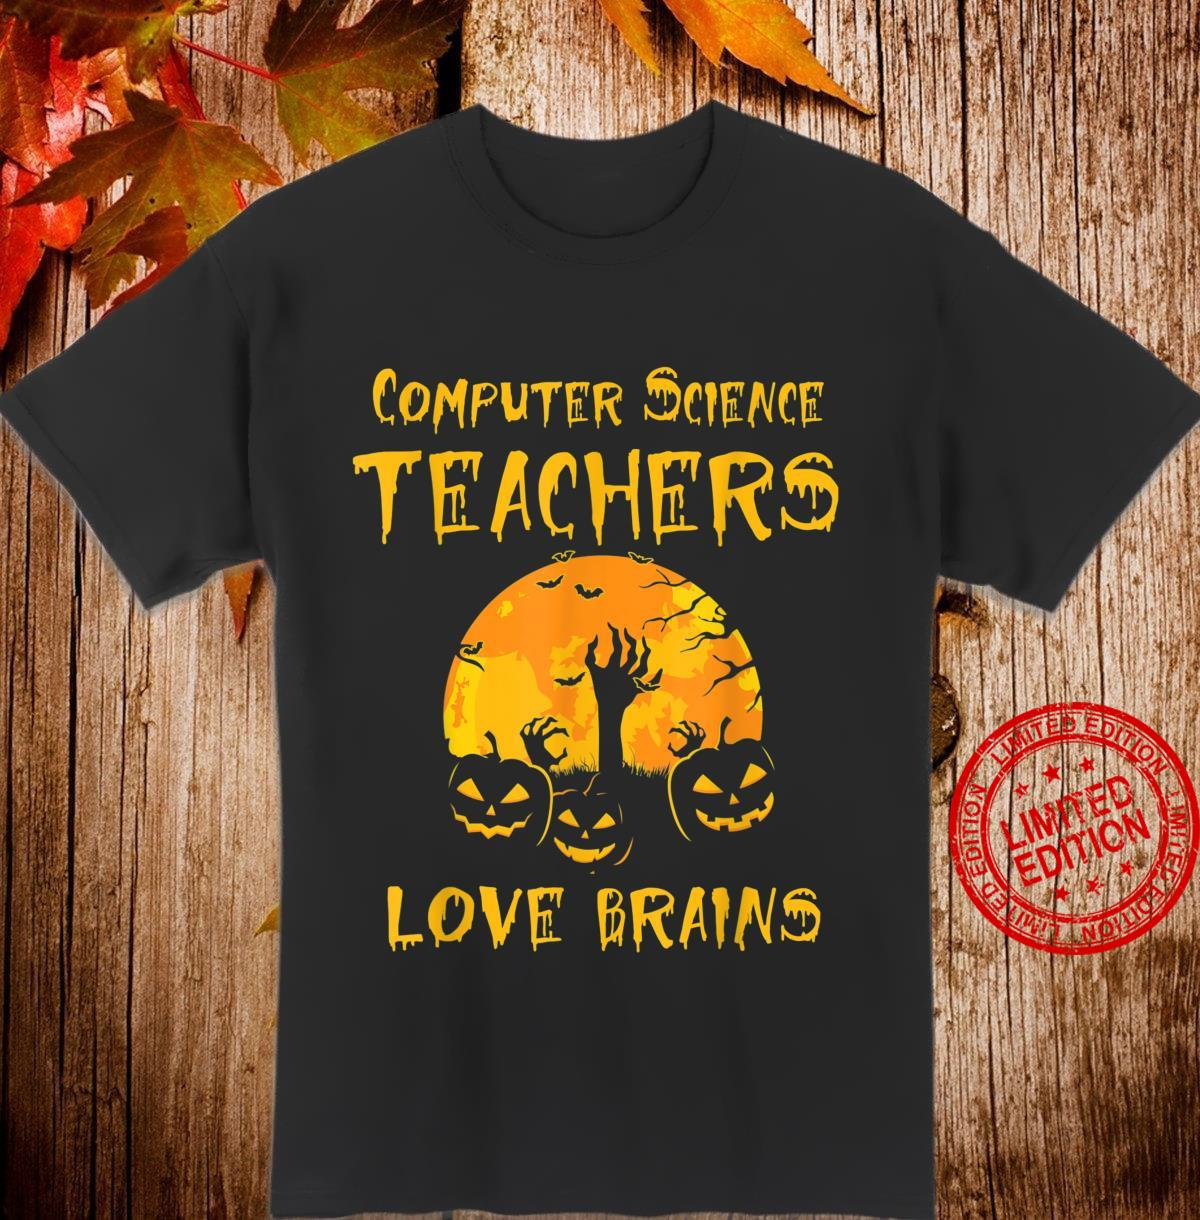 Computer Science Teachers Love Brains Halloween Costume Shirt